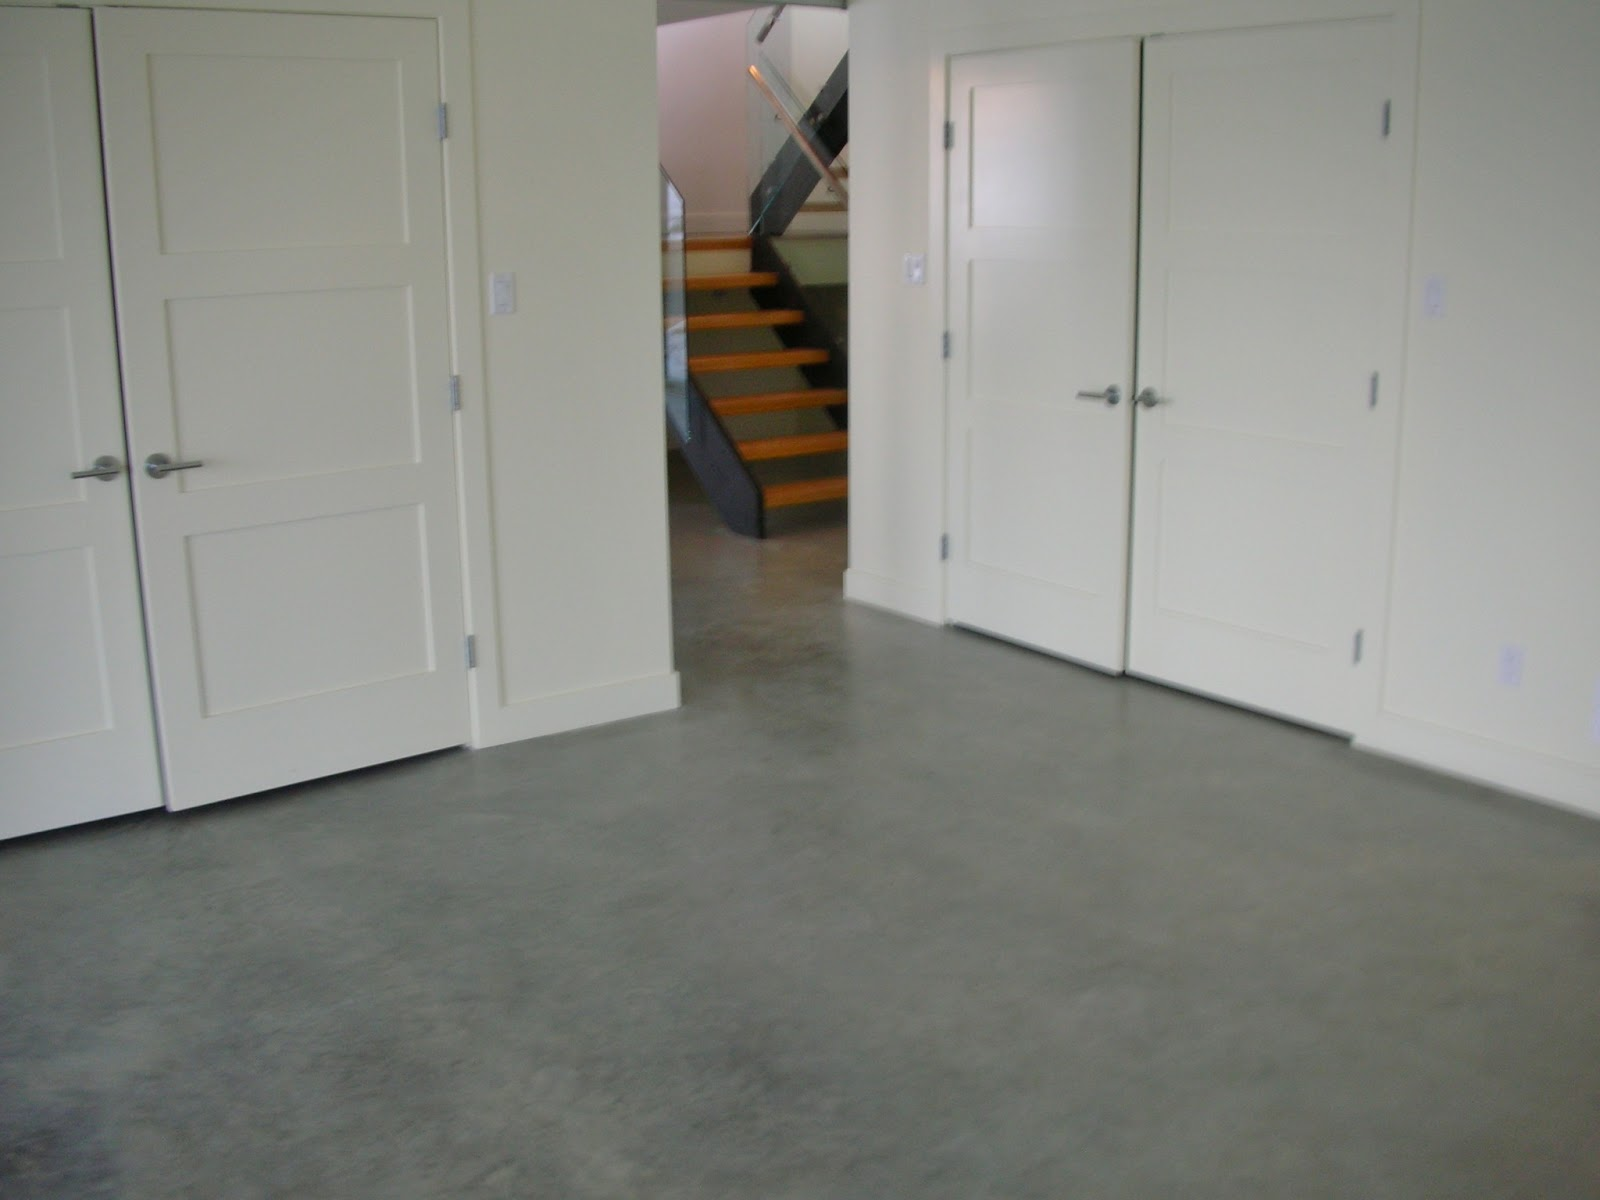 Mode concrete concrete floors easily create design for Concrete basement floor